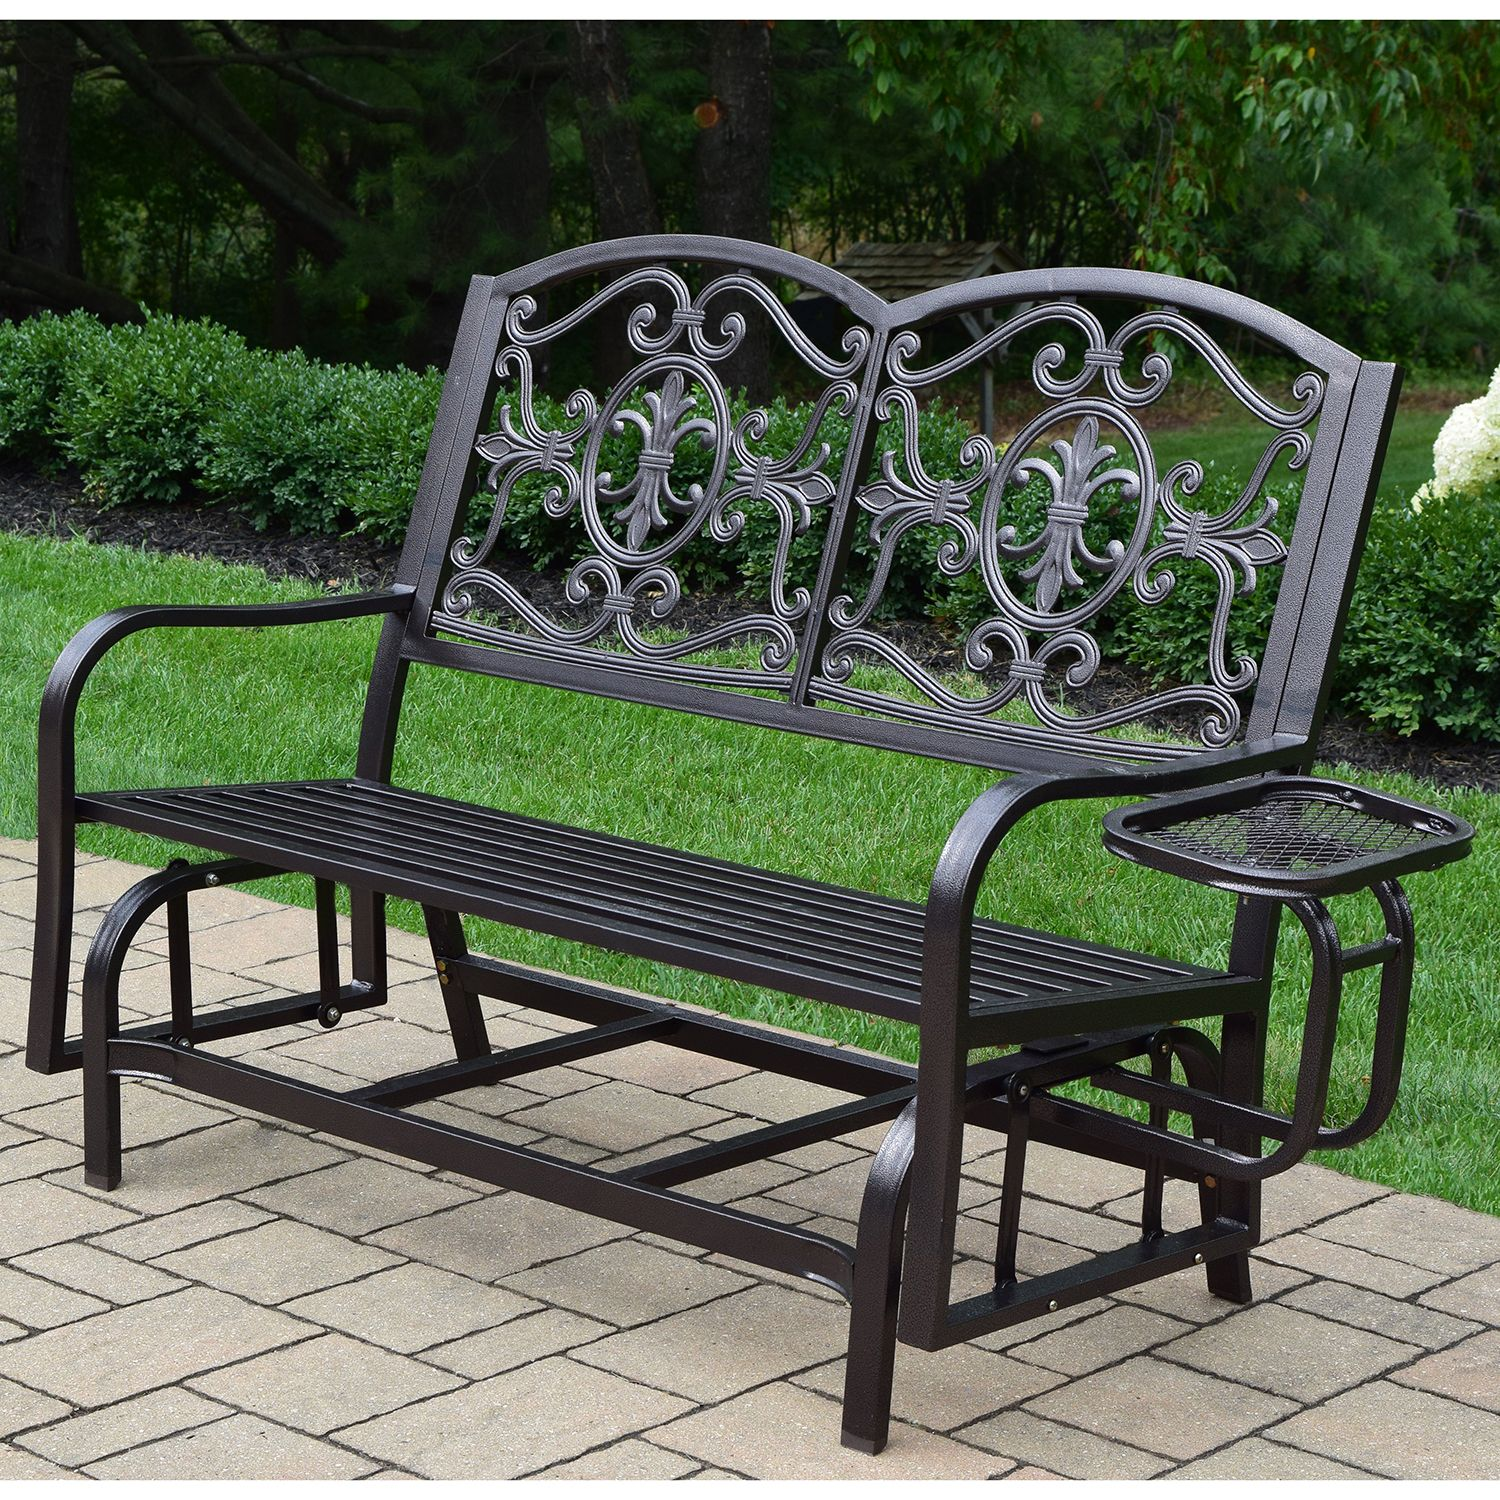 Patio Metal Benches Chairs Furniture